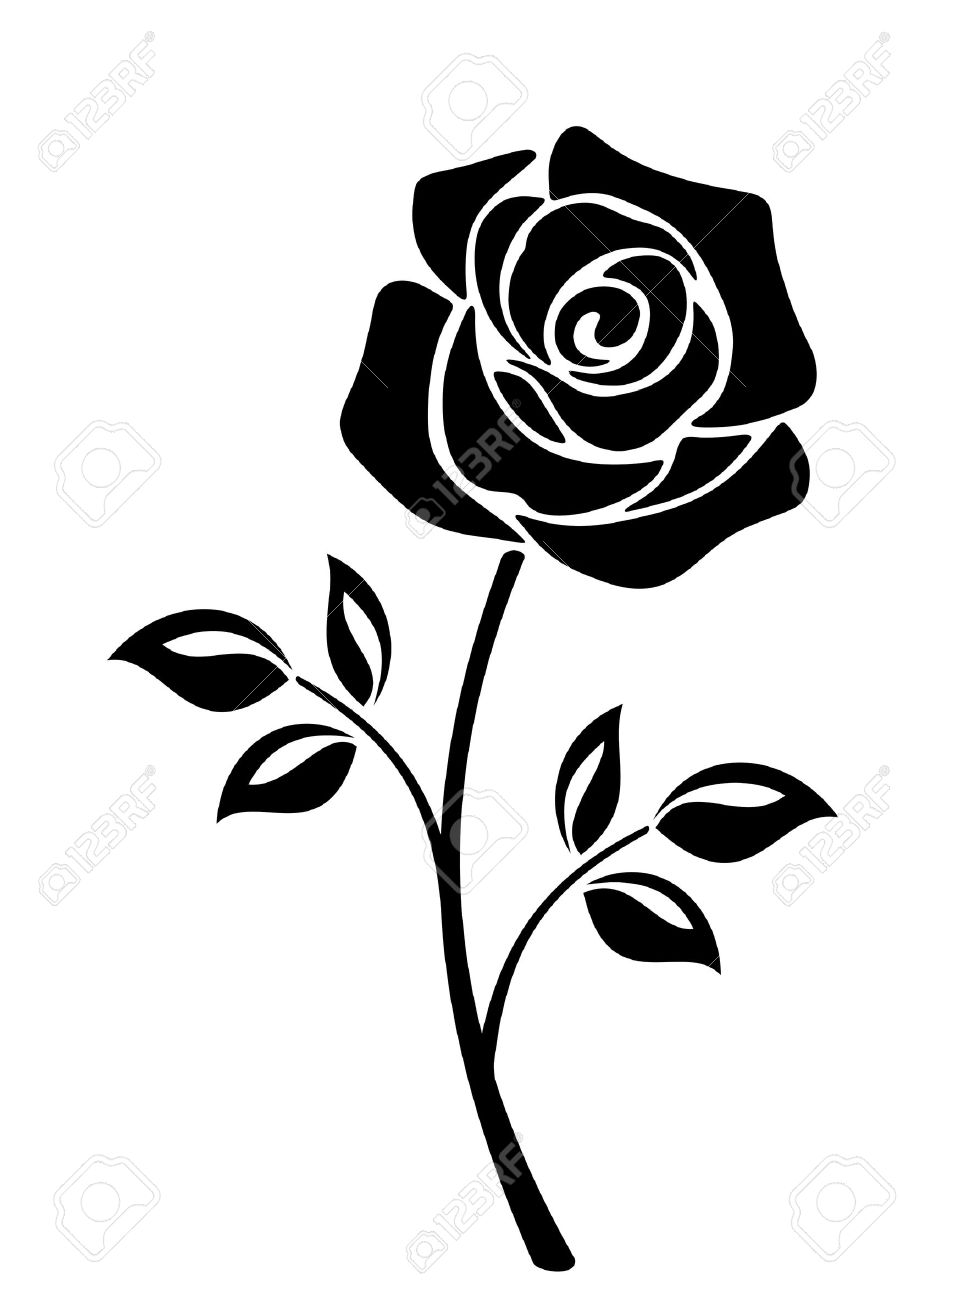 975x1300 Vector Black Silhouette Of A Rose Flower With Stem Isolated On